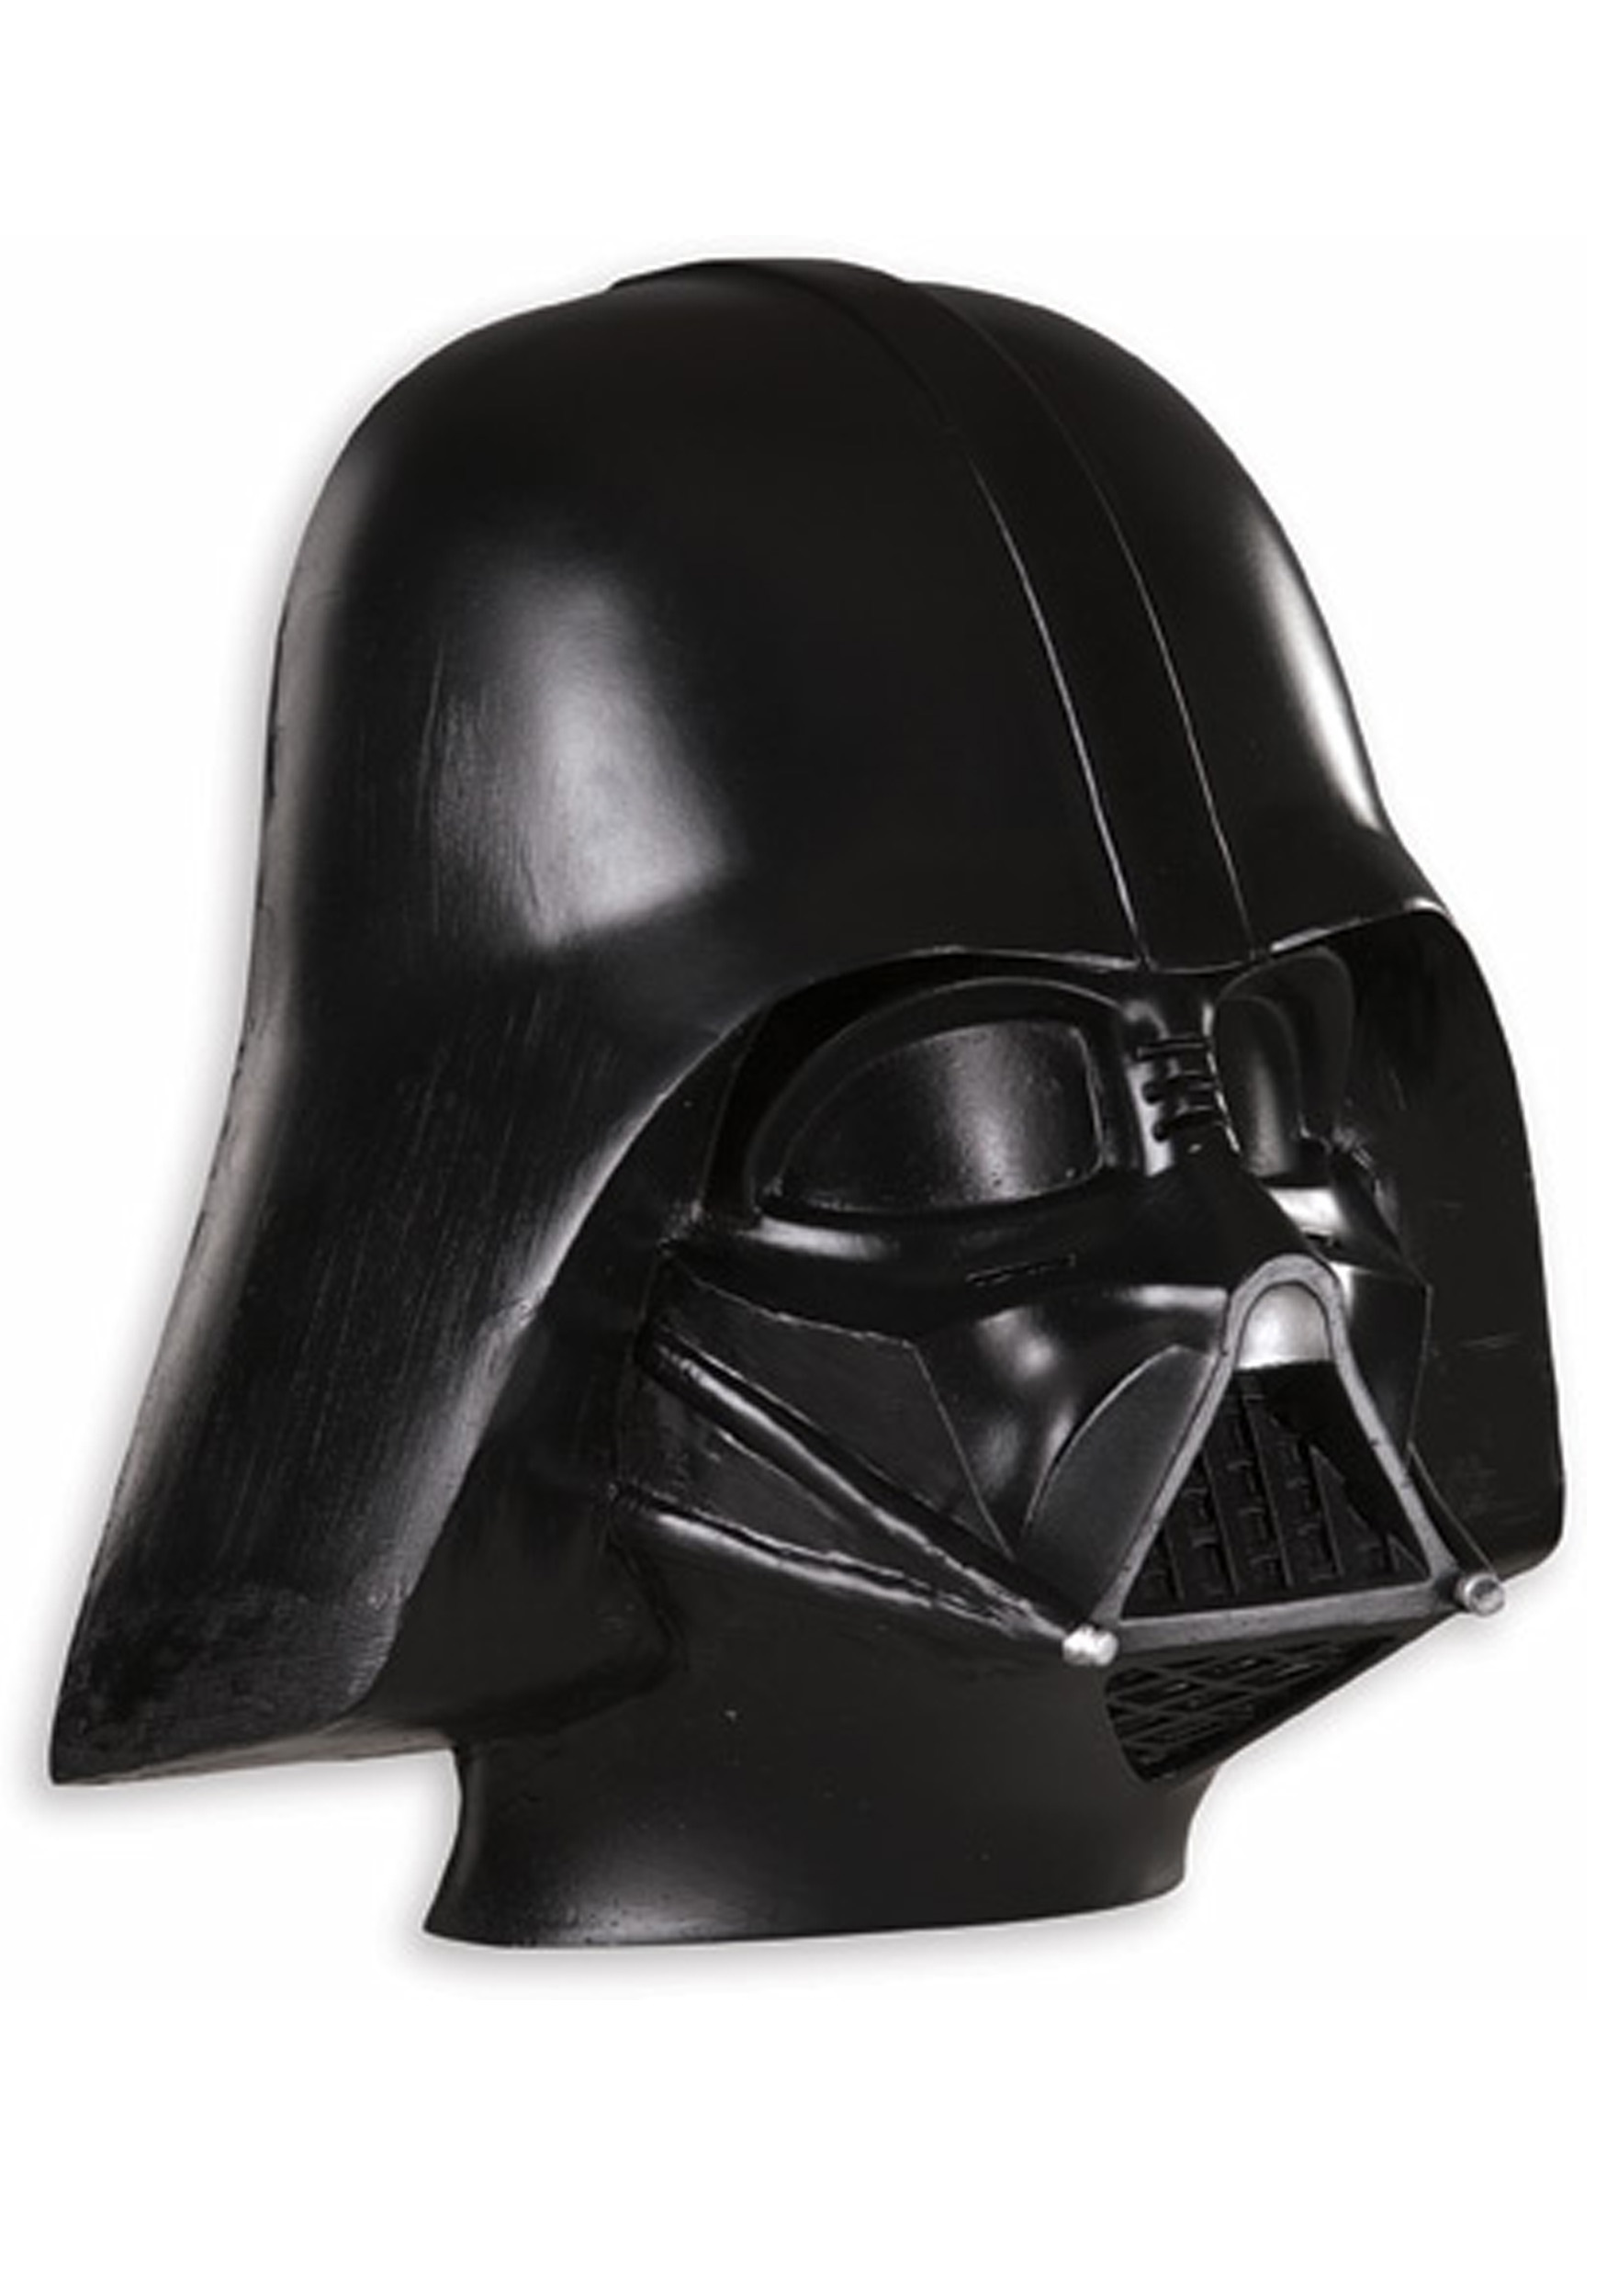 Full Face Darth Vader Mask